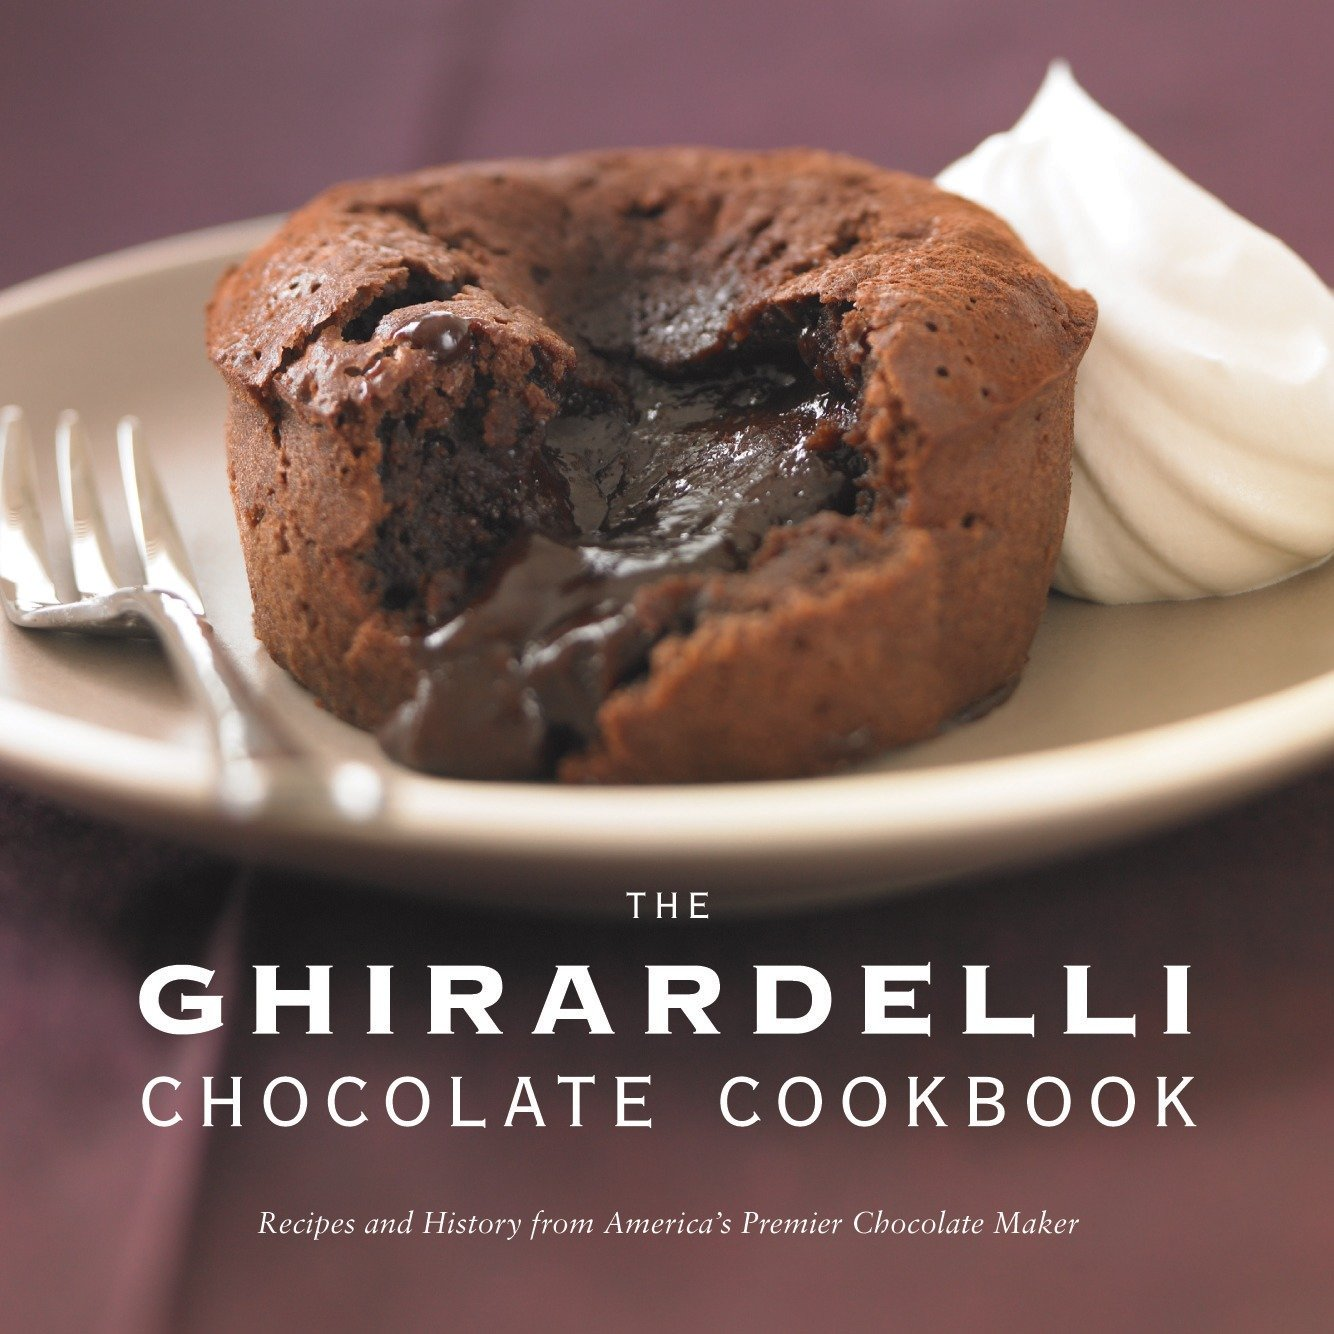 The Ghirardelli Chocolate Cookbook : Recipes and History from America's Premier Chocolate Maker